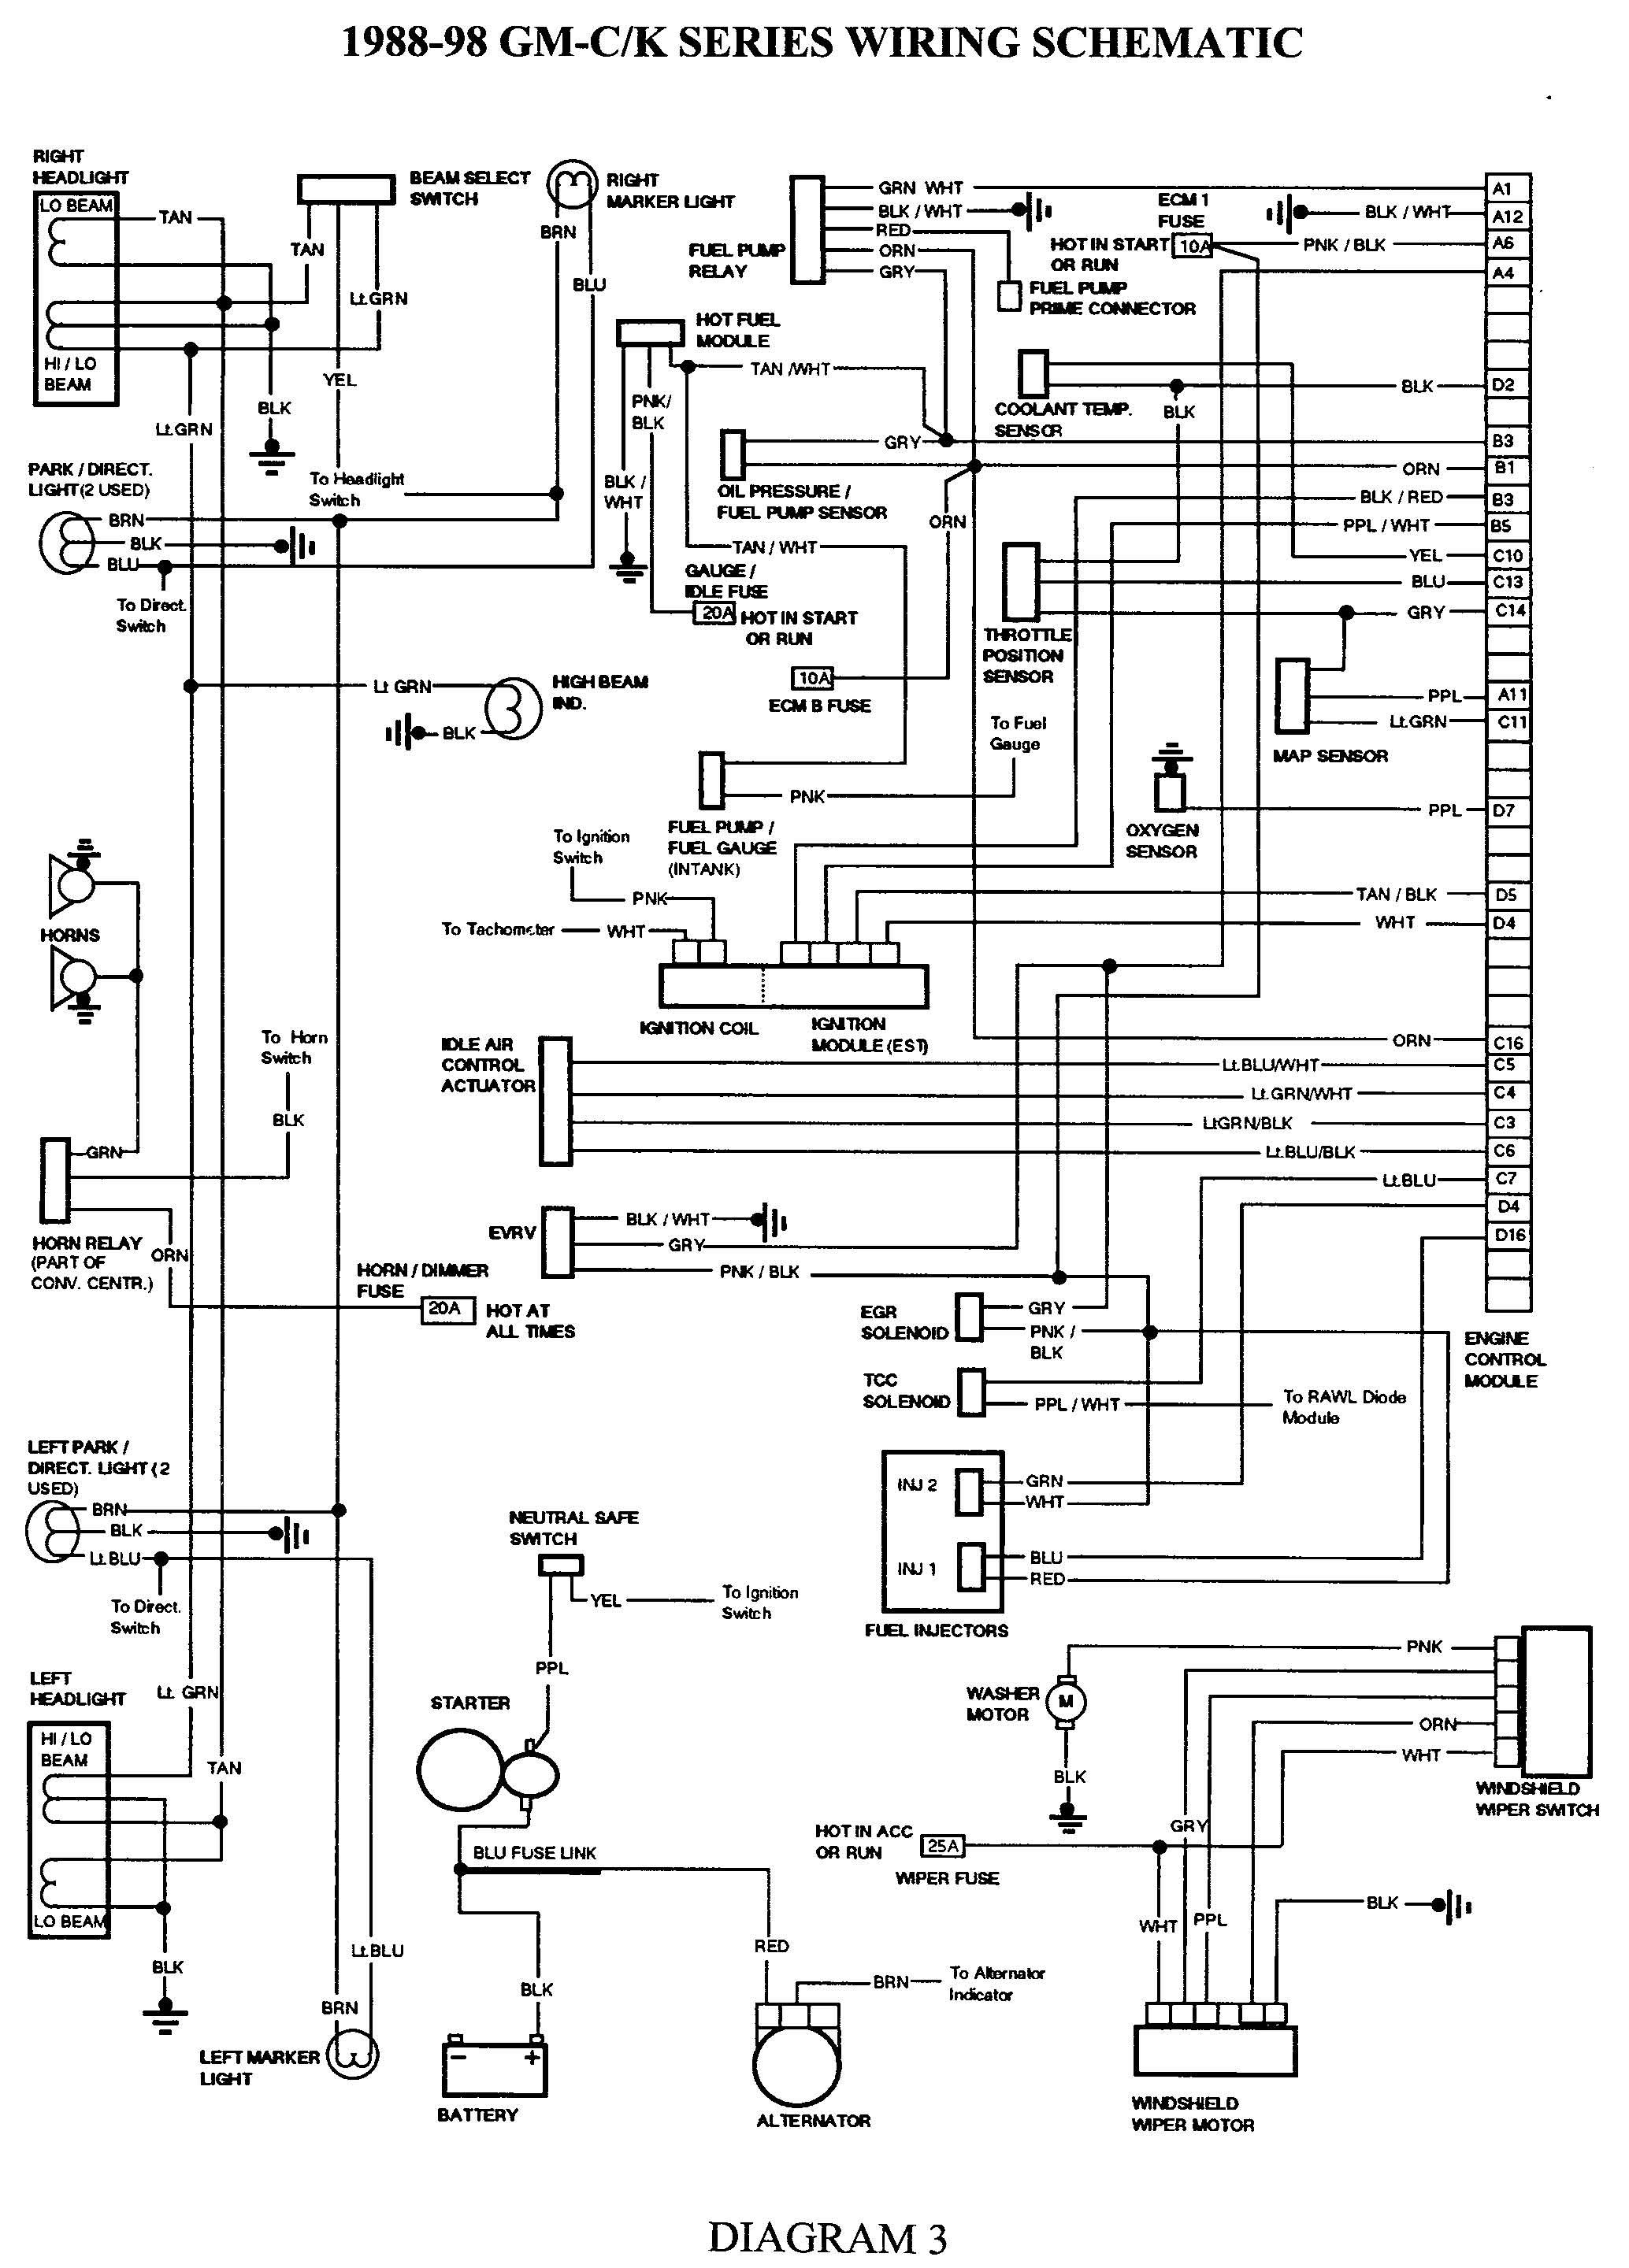 hight resolution of 2012 gmc wiring diagram wiring diagram schematics international 4700 dt466e diagram 1989 international wiring diagram